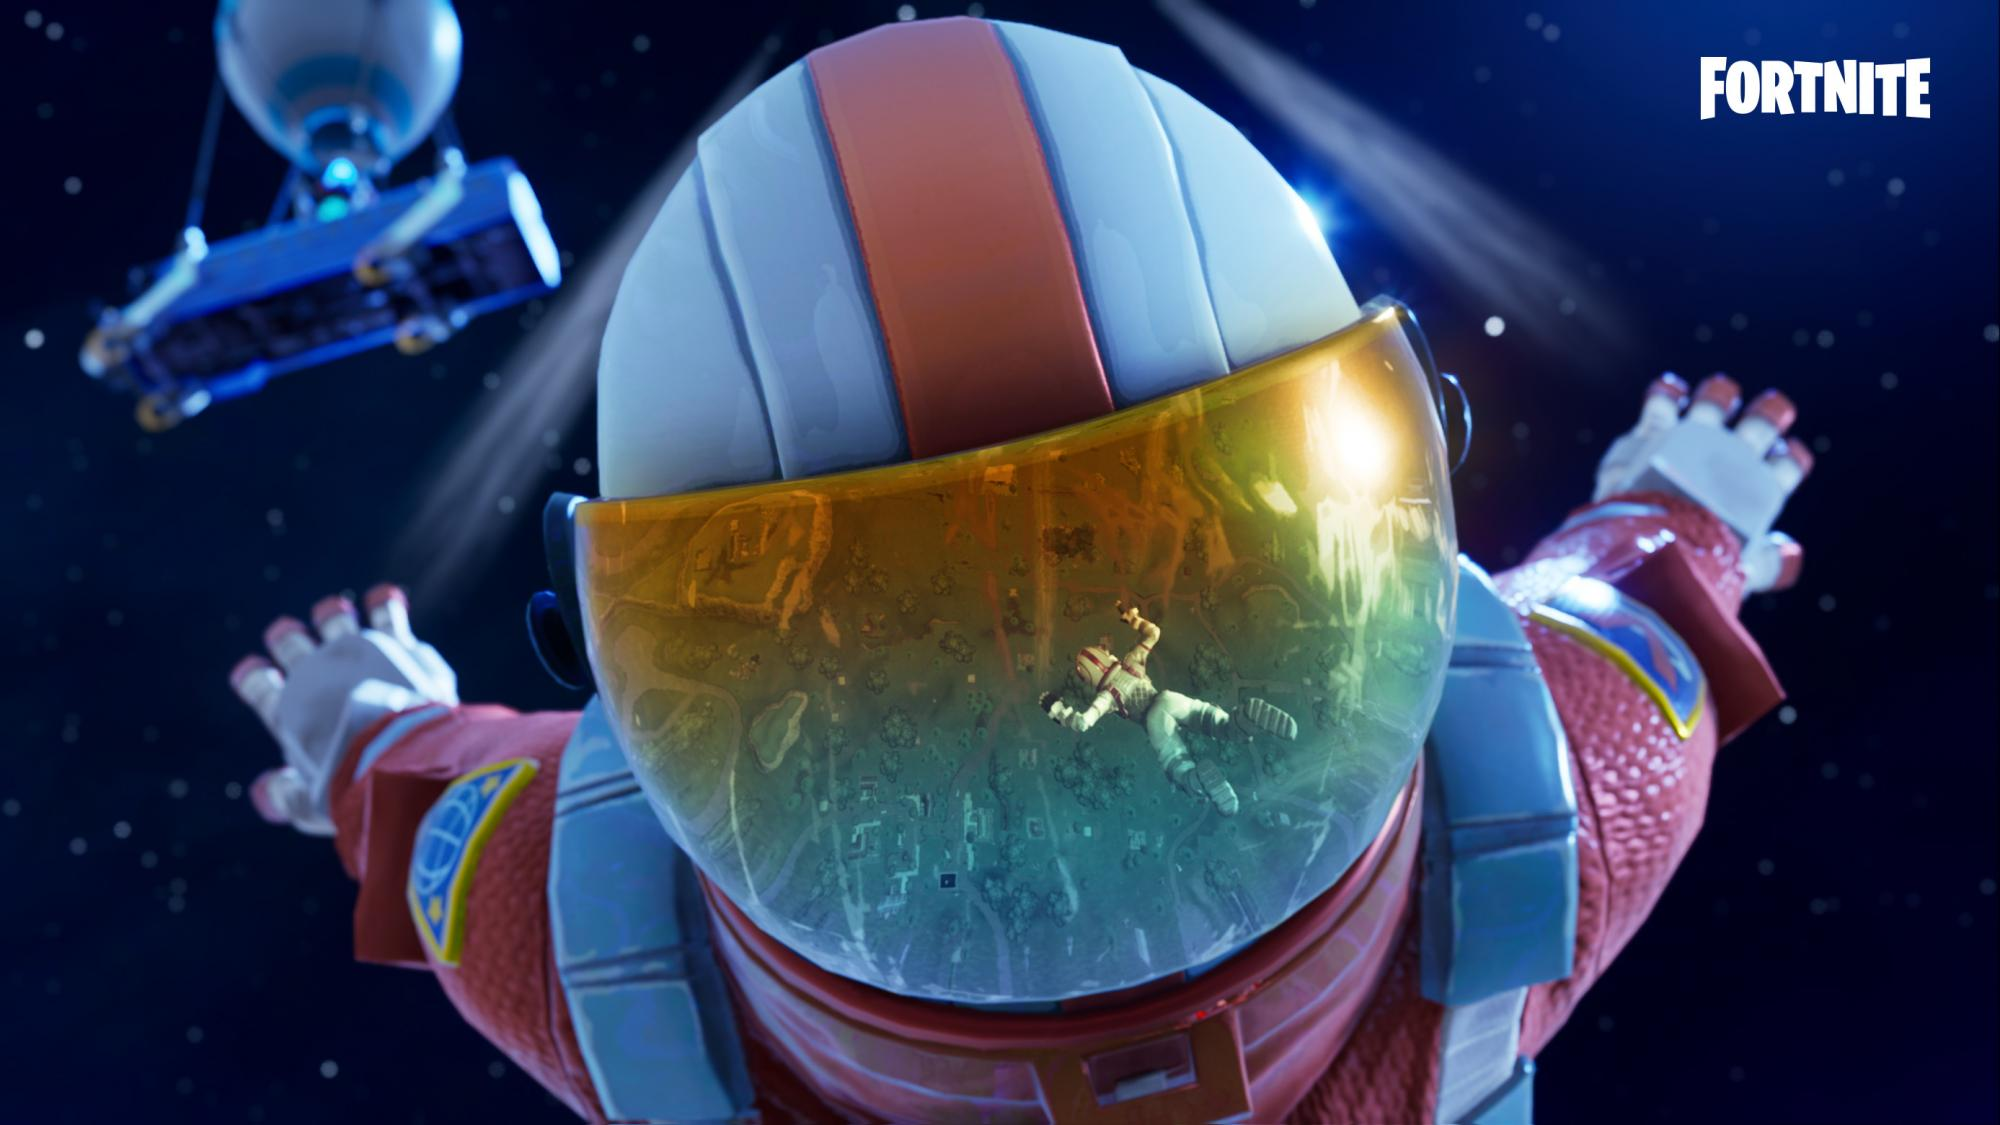 Fortnite's Season 3 Battle Pass Details Revealed